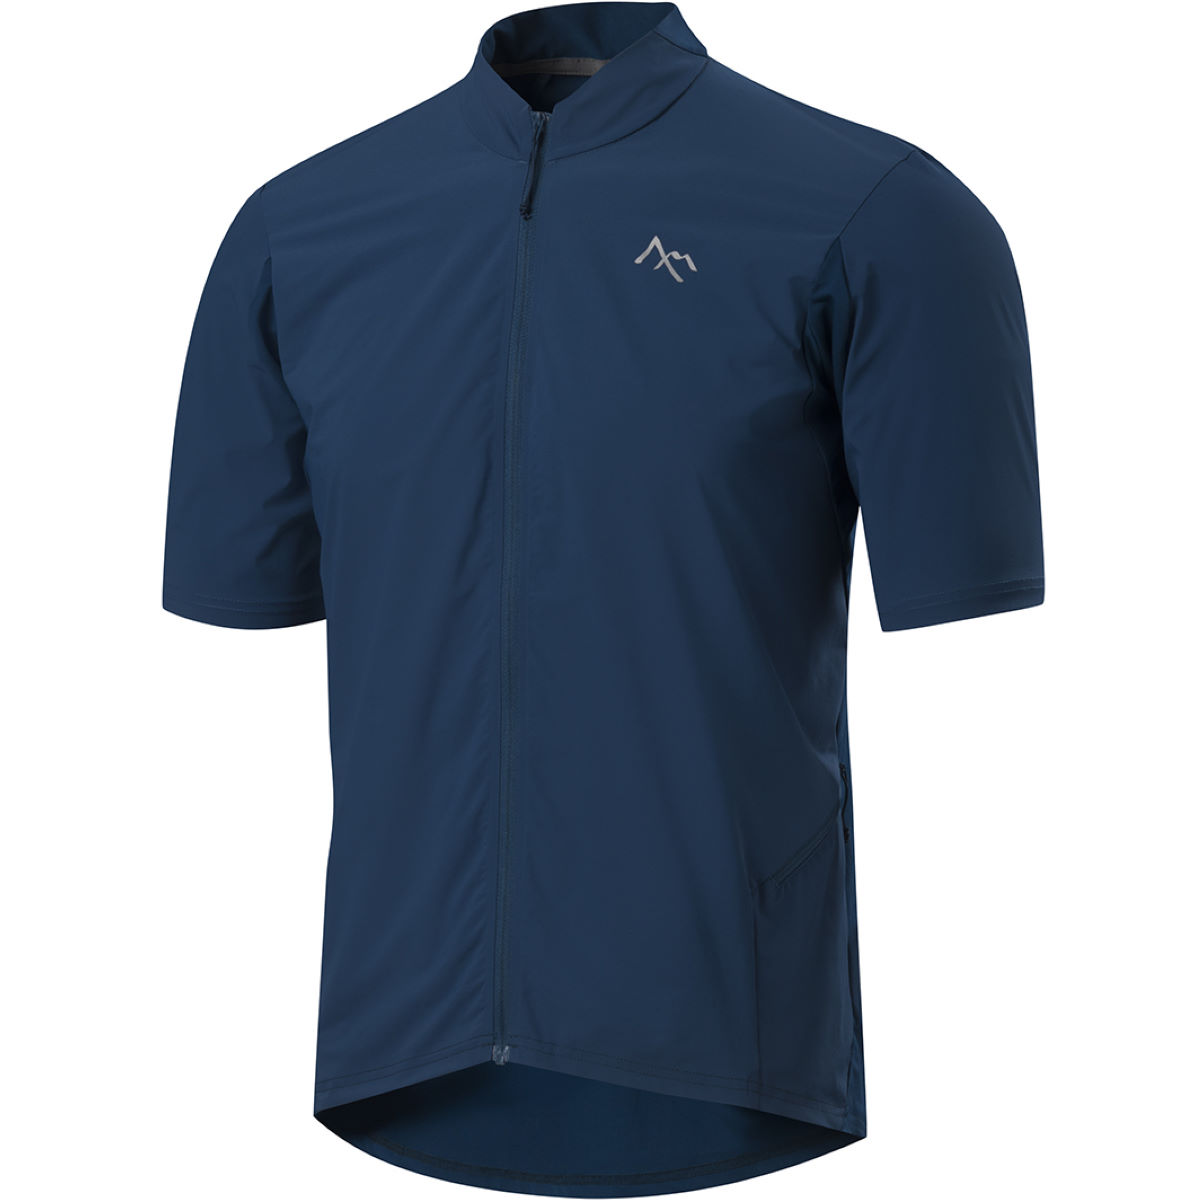 Maillot 7Mesh S2S (manches courtes) - M 2 Ball Blue